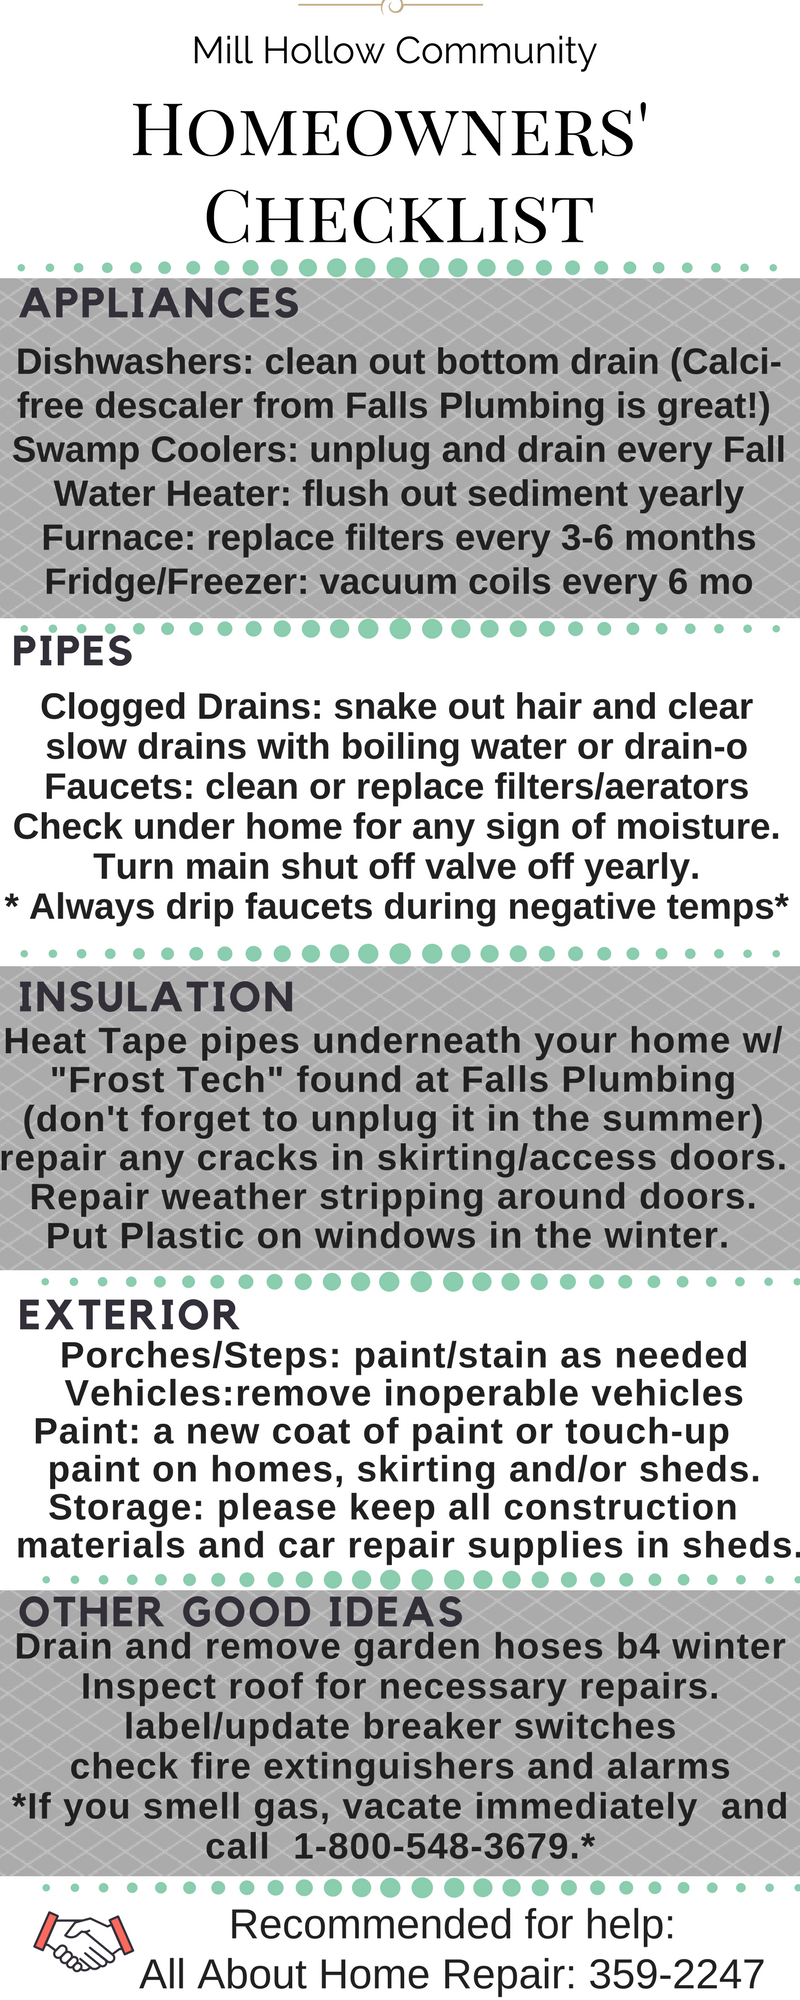 How to avoid some common maintenance costs!